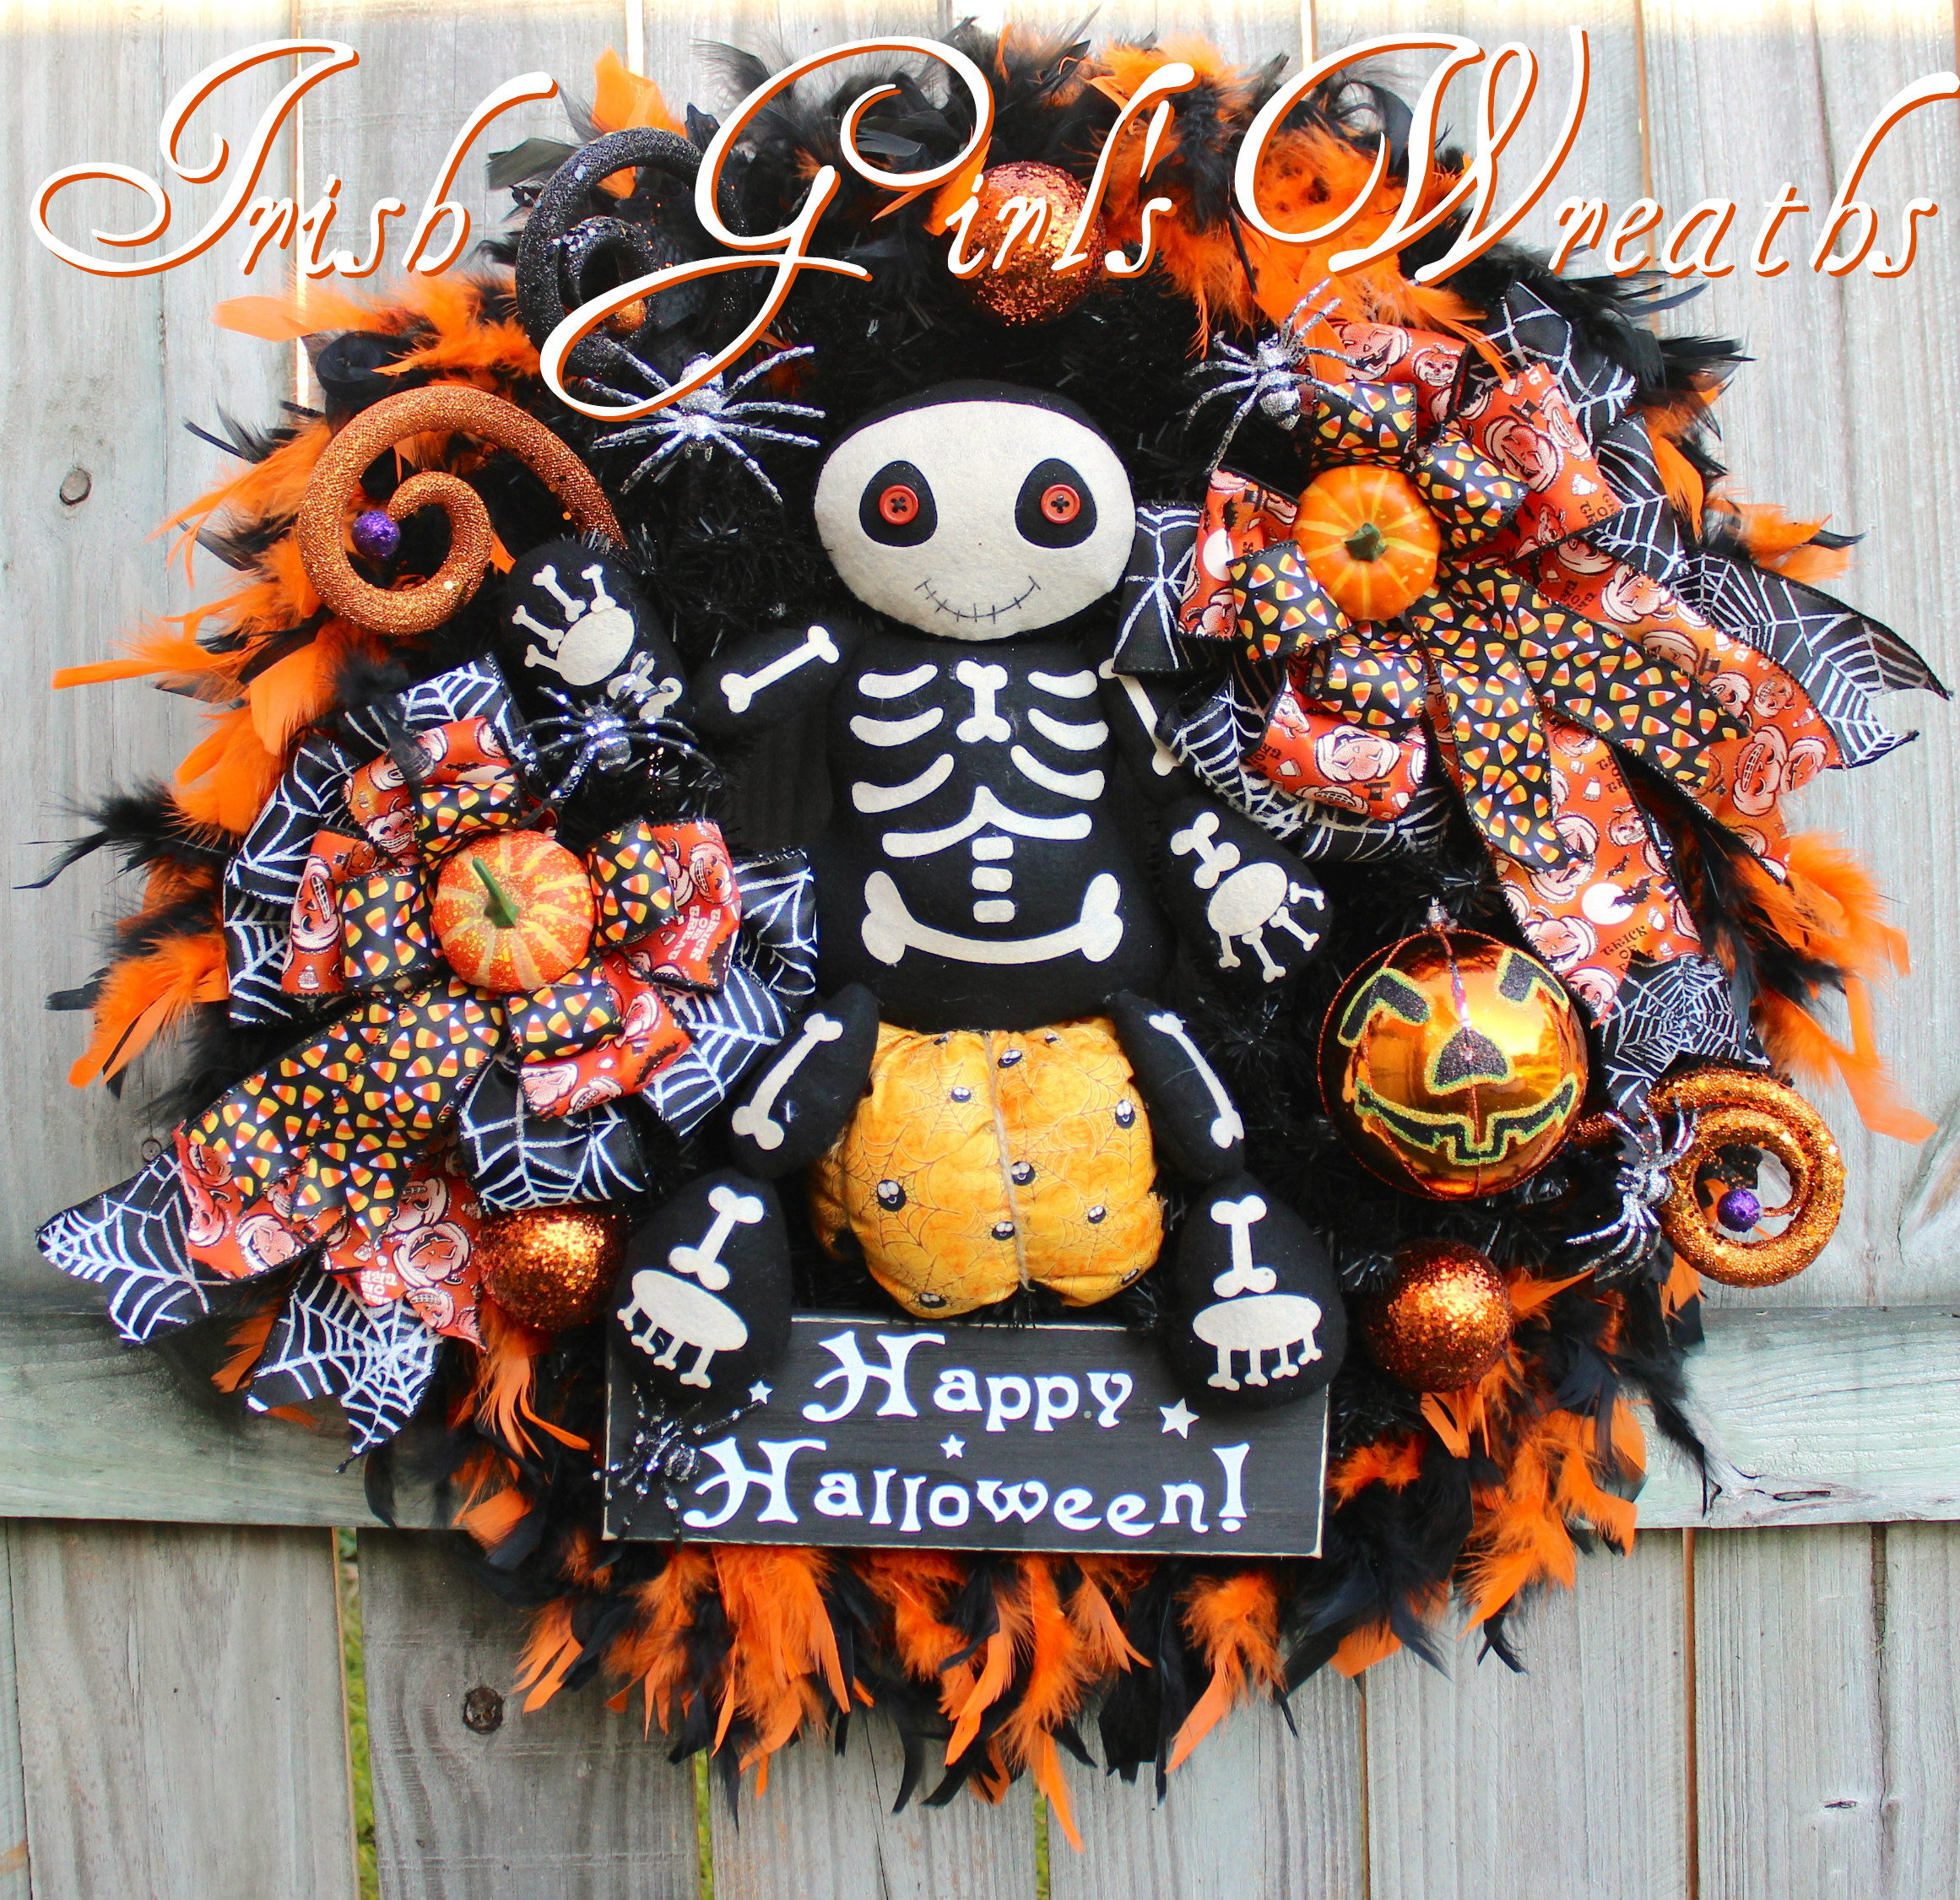 Adorable Skeleton Halloween Wreath, Spider, Plush Pumpkin, Orange & Black